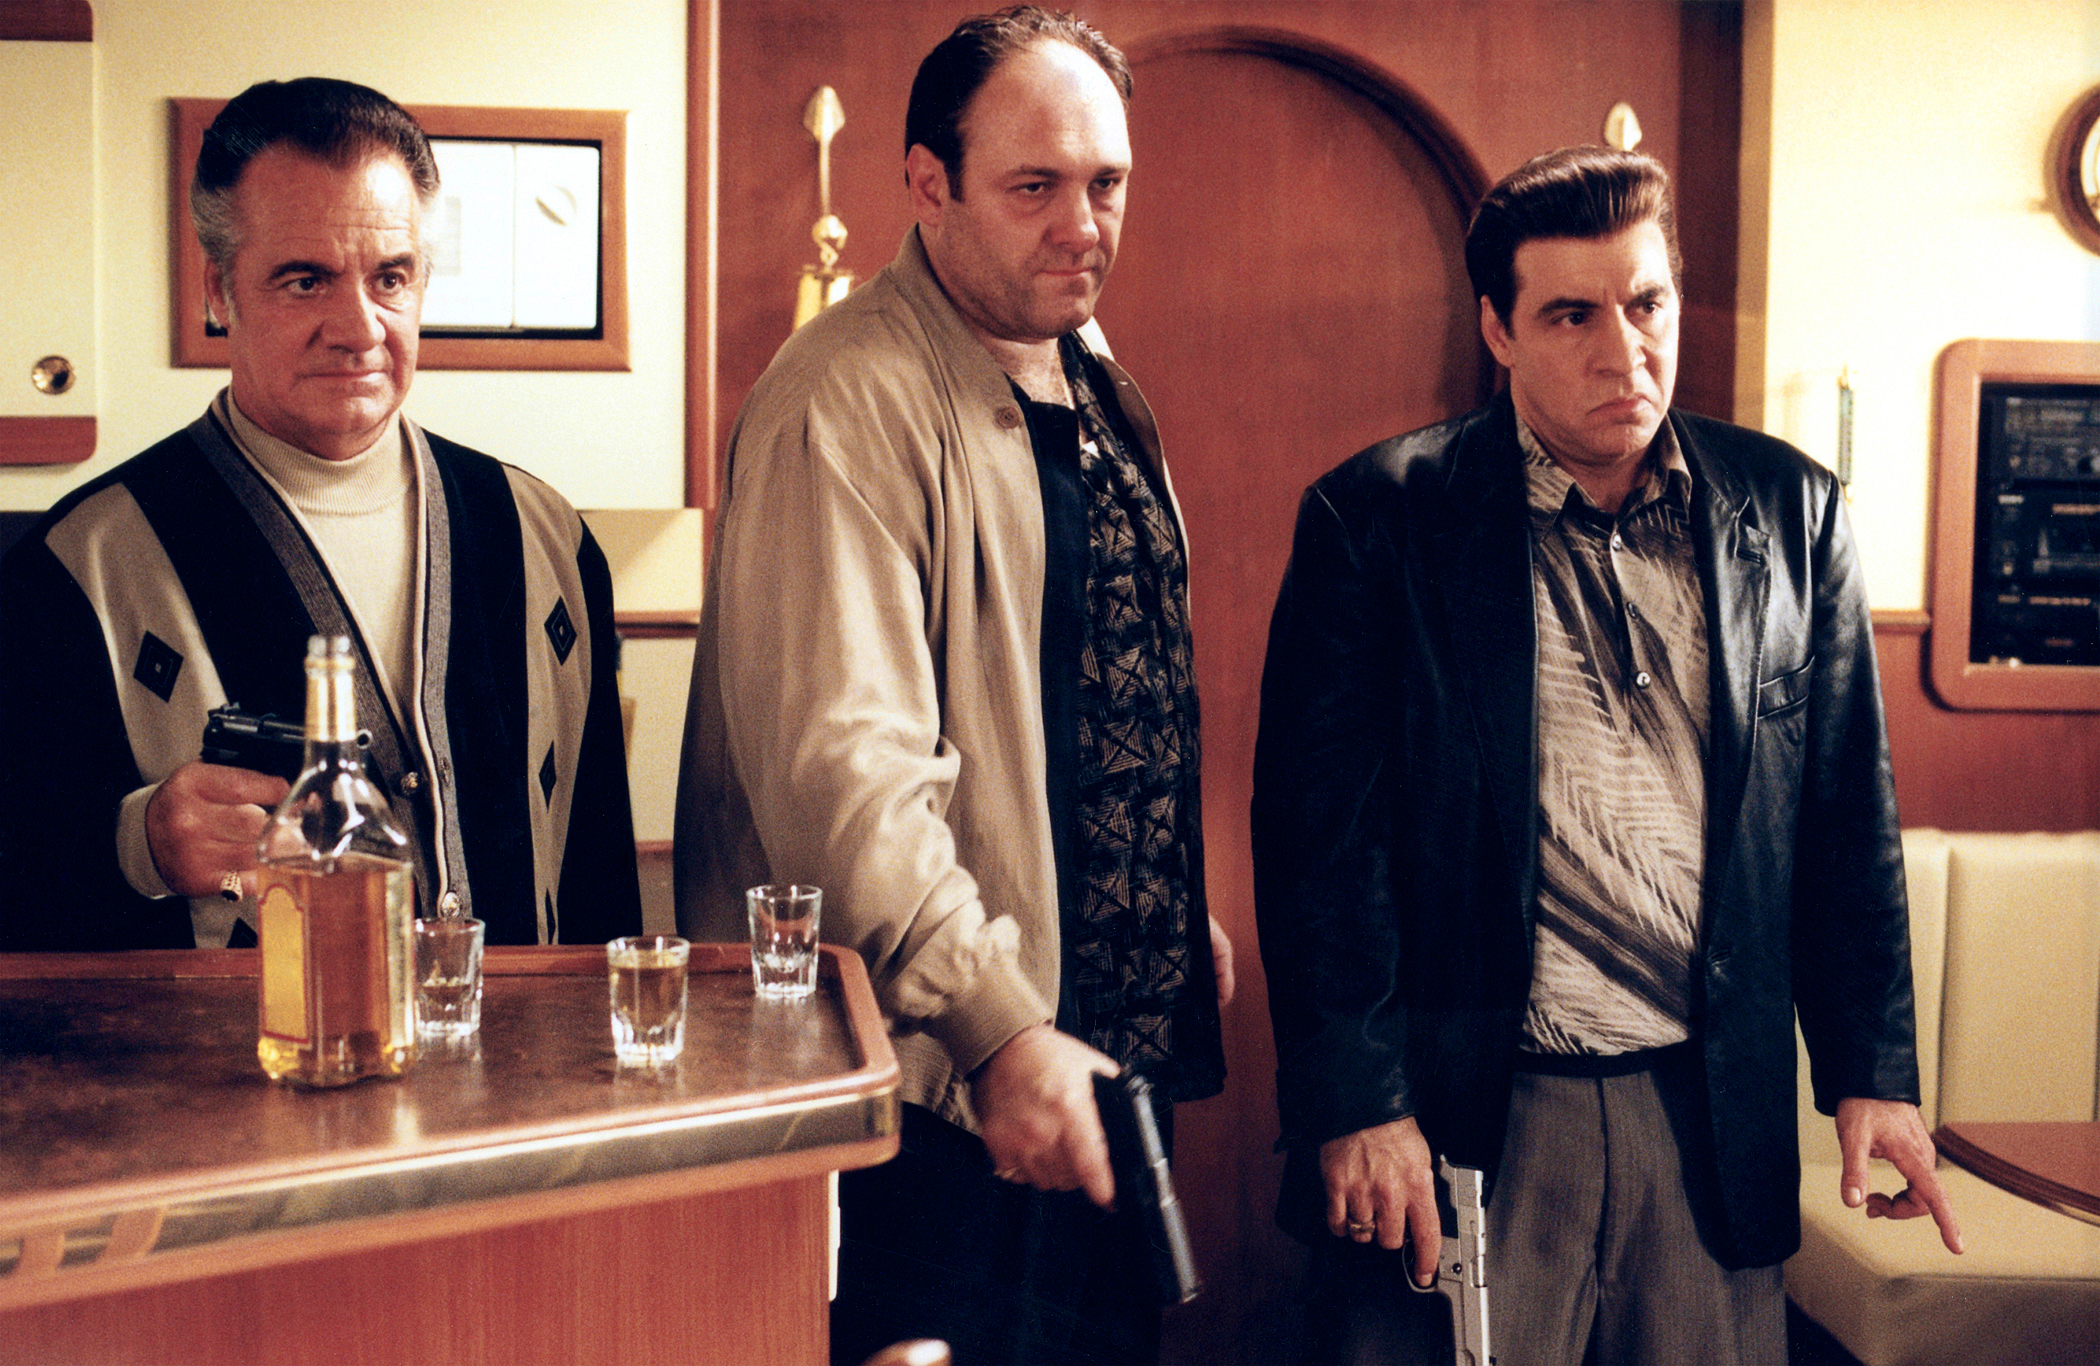 THE SOPRANOS, Tony Sirico, James Gandolfini, Steven Van Zandt, (Season 2, 2000), 1999-2007.